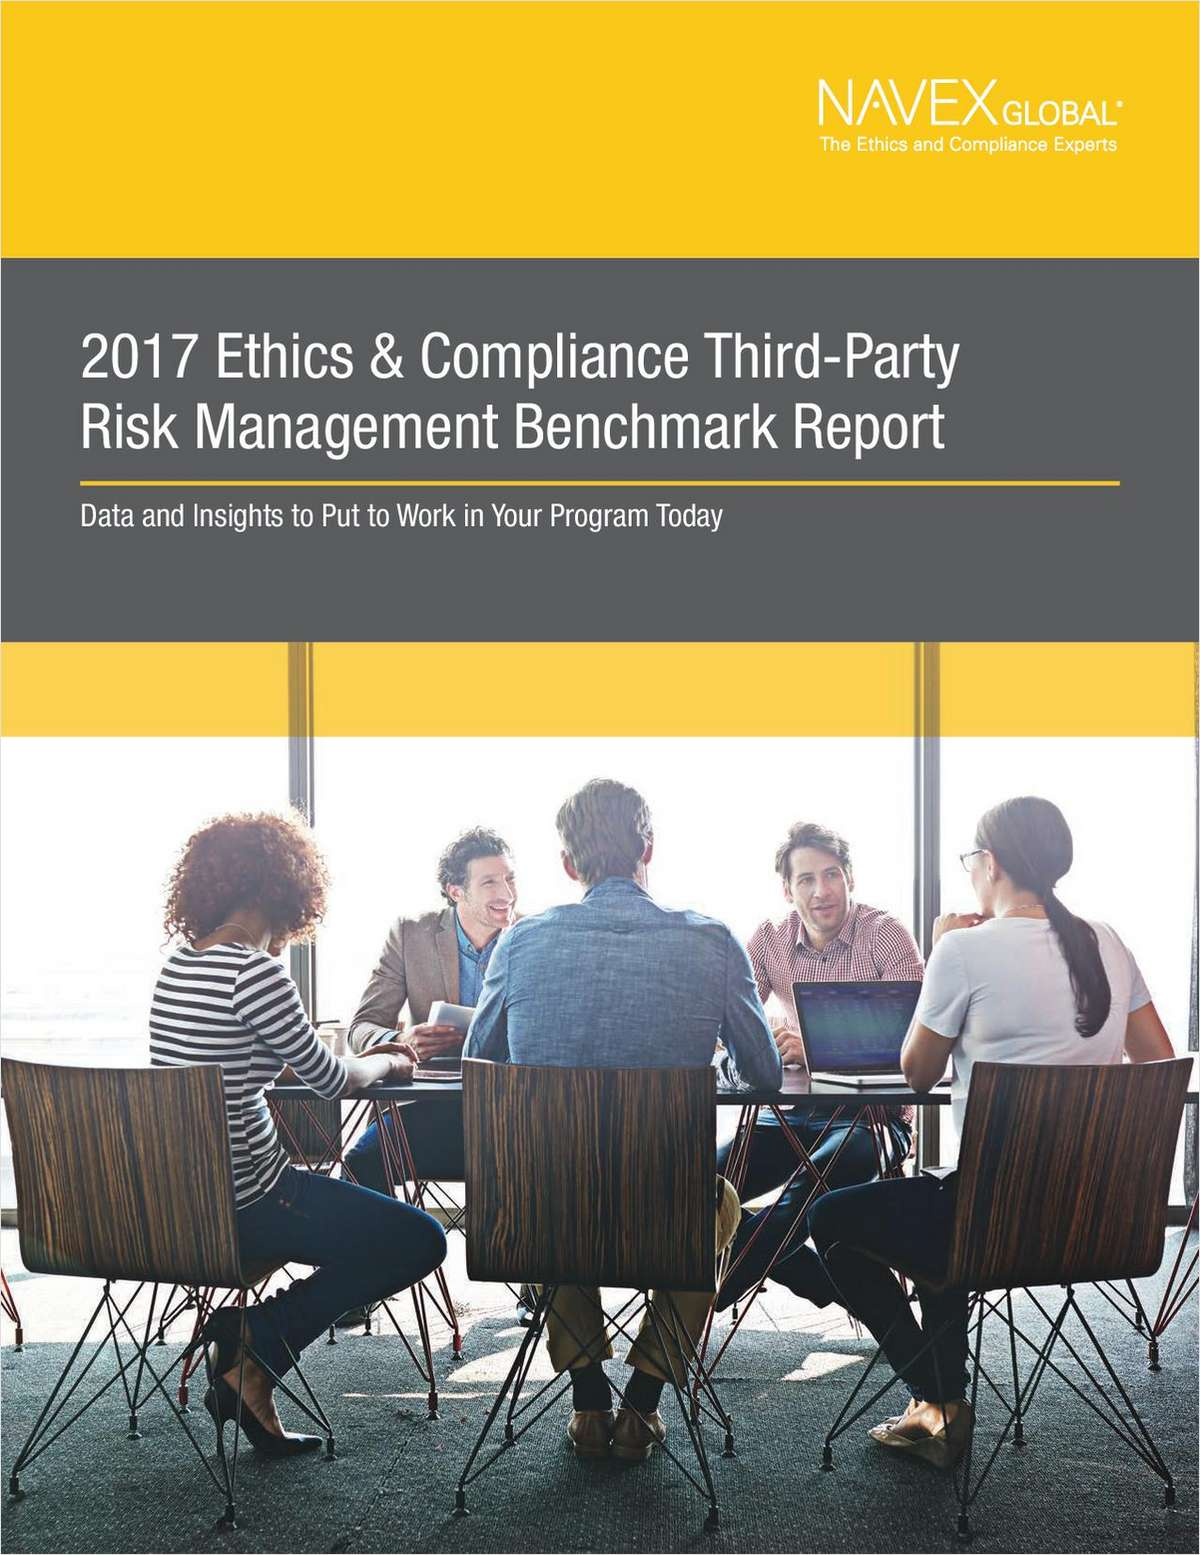 2017 Ethics & Compliance Third-Party Risk Management Benchmark Report